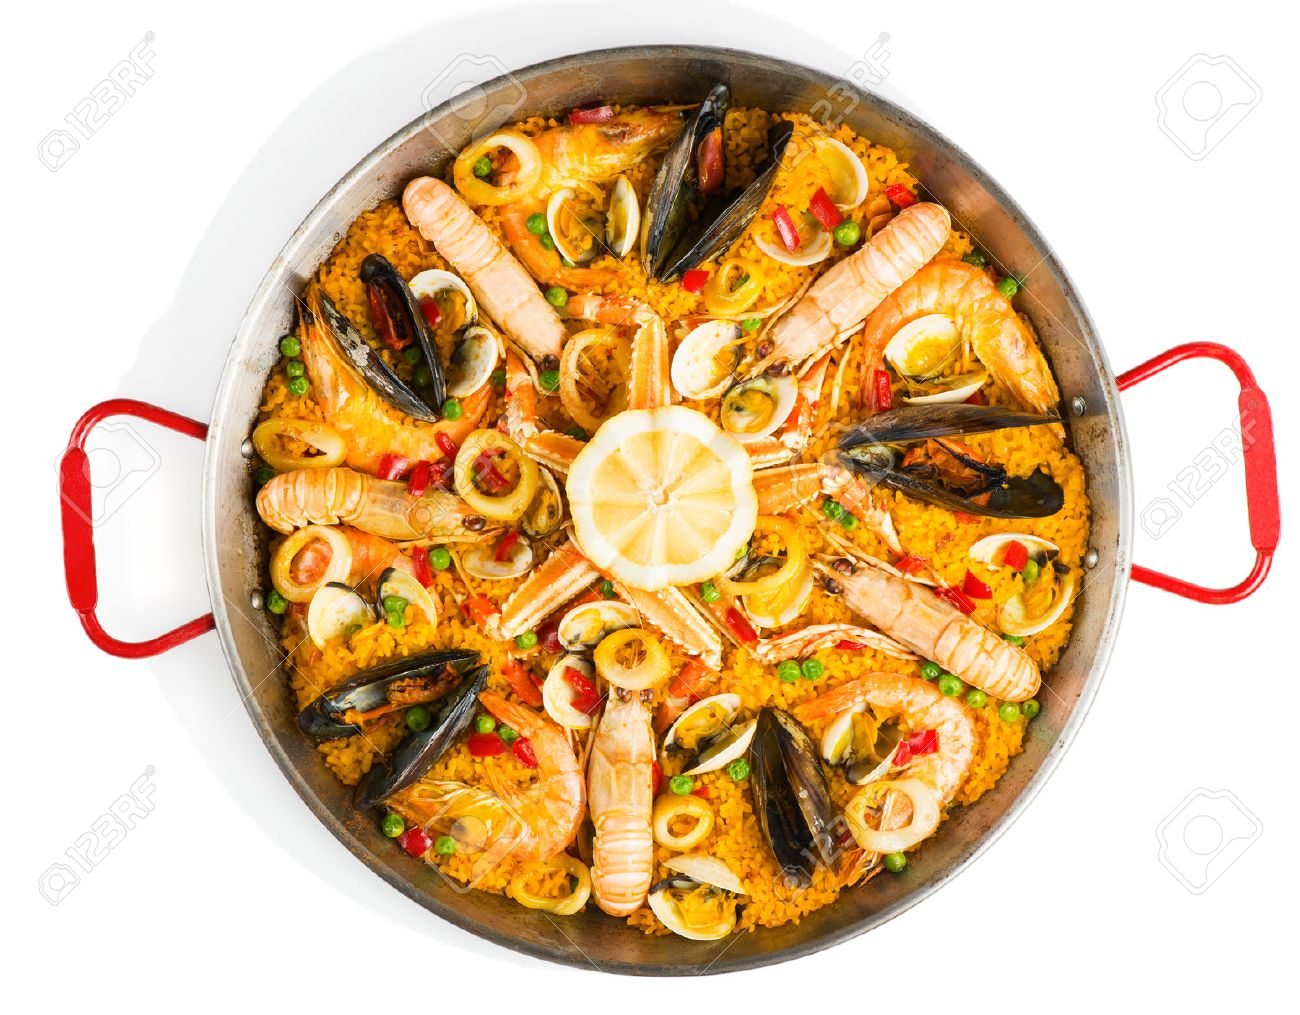 Dessin Paella top view of typical spanish seafood paella in traditional pan